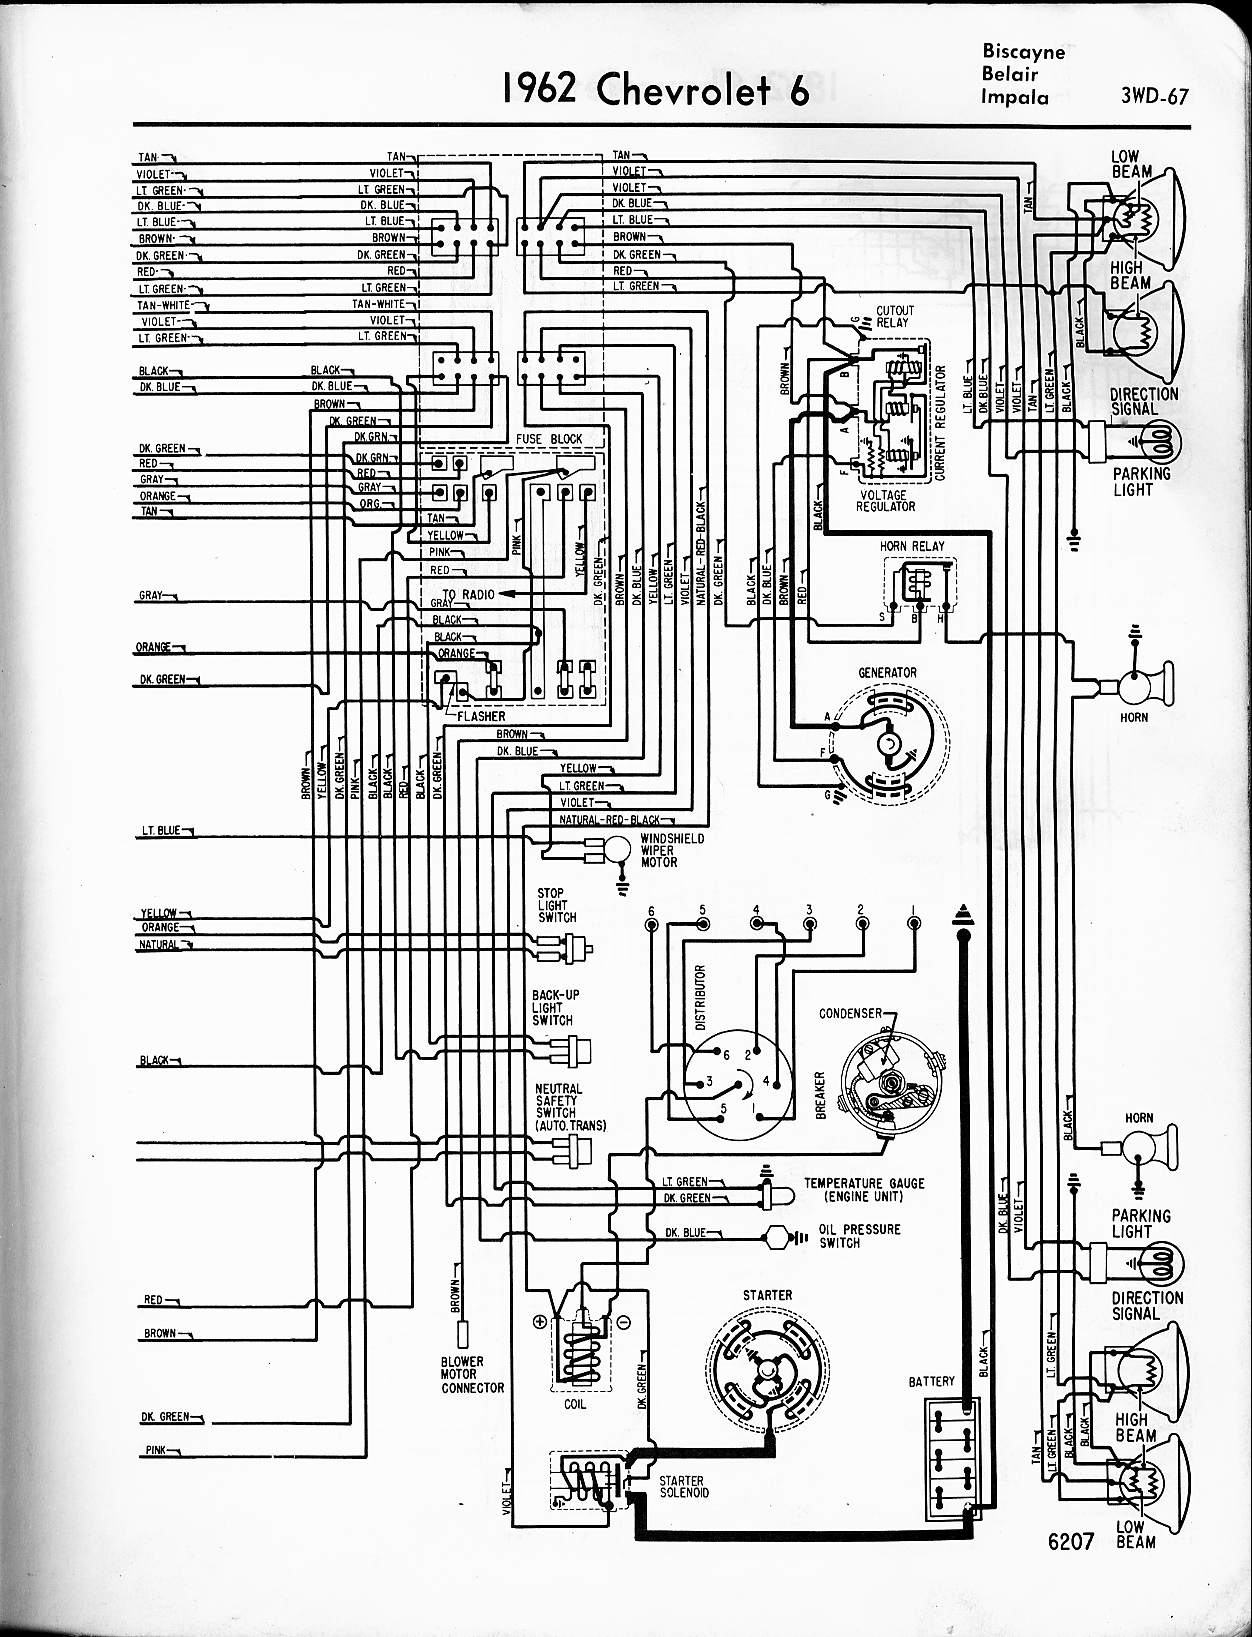 Diagram Chevy Corvette Wiring Diagram Full Version